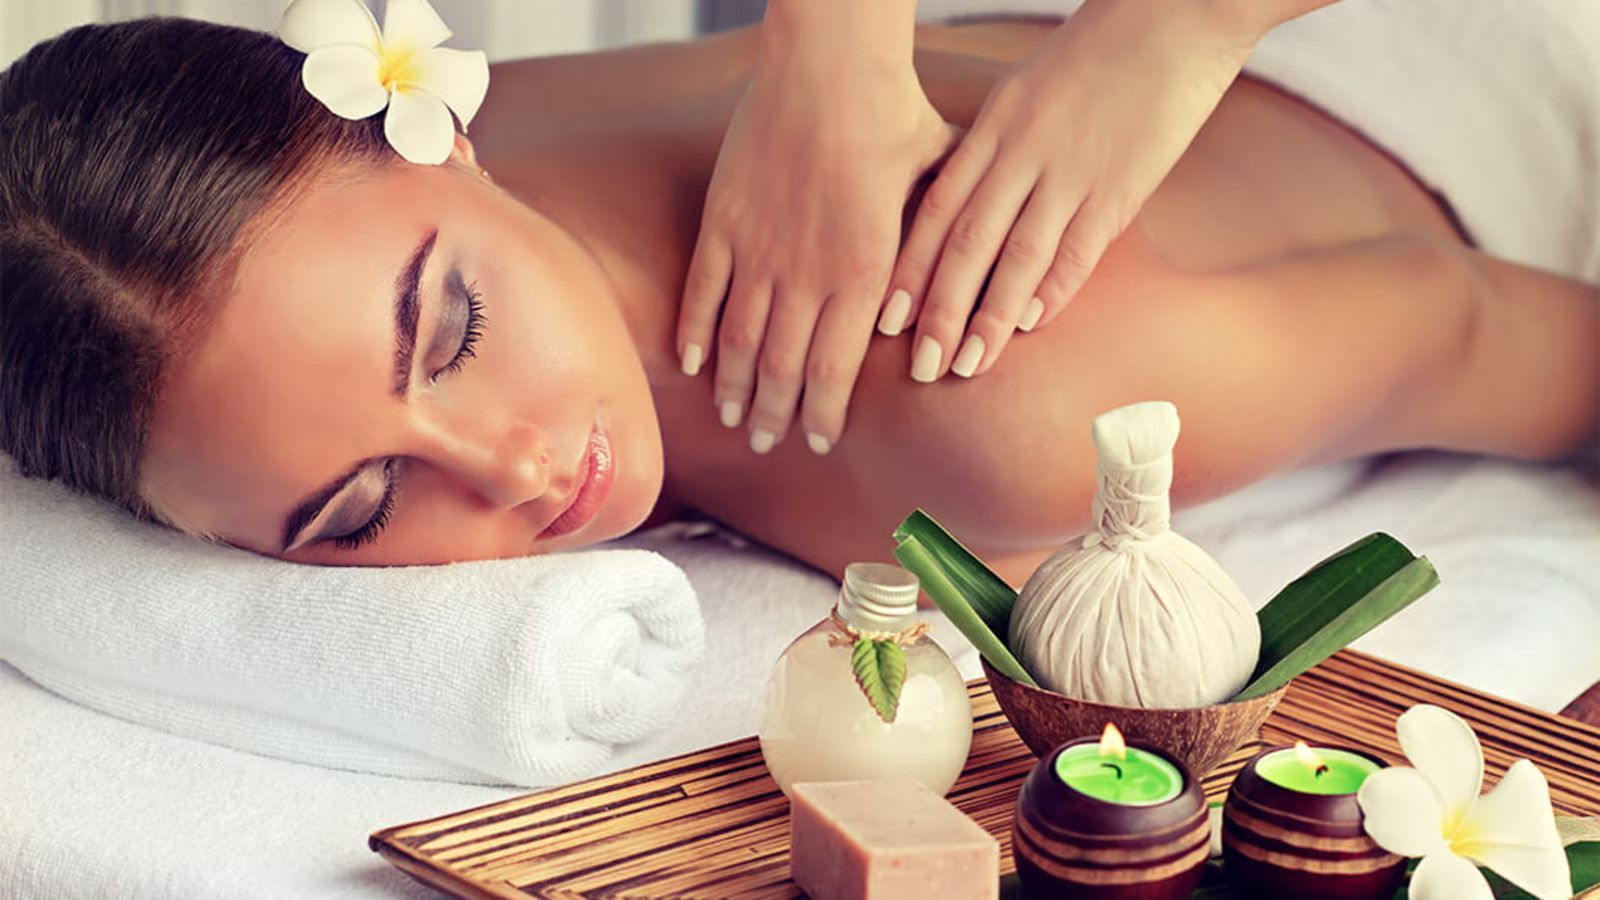 Innovative spa services your clients will love